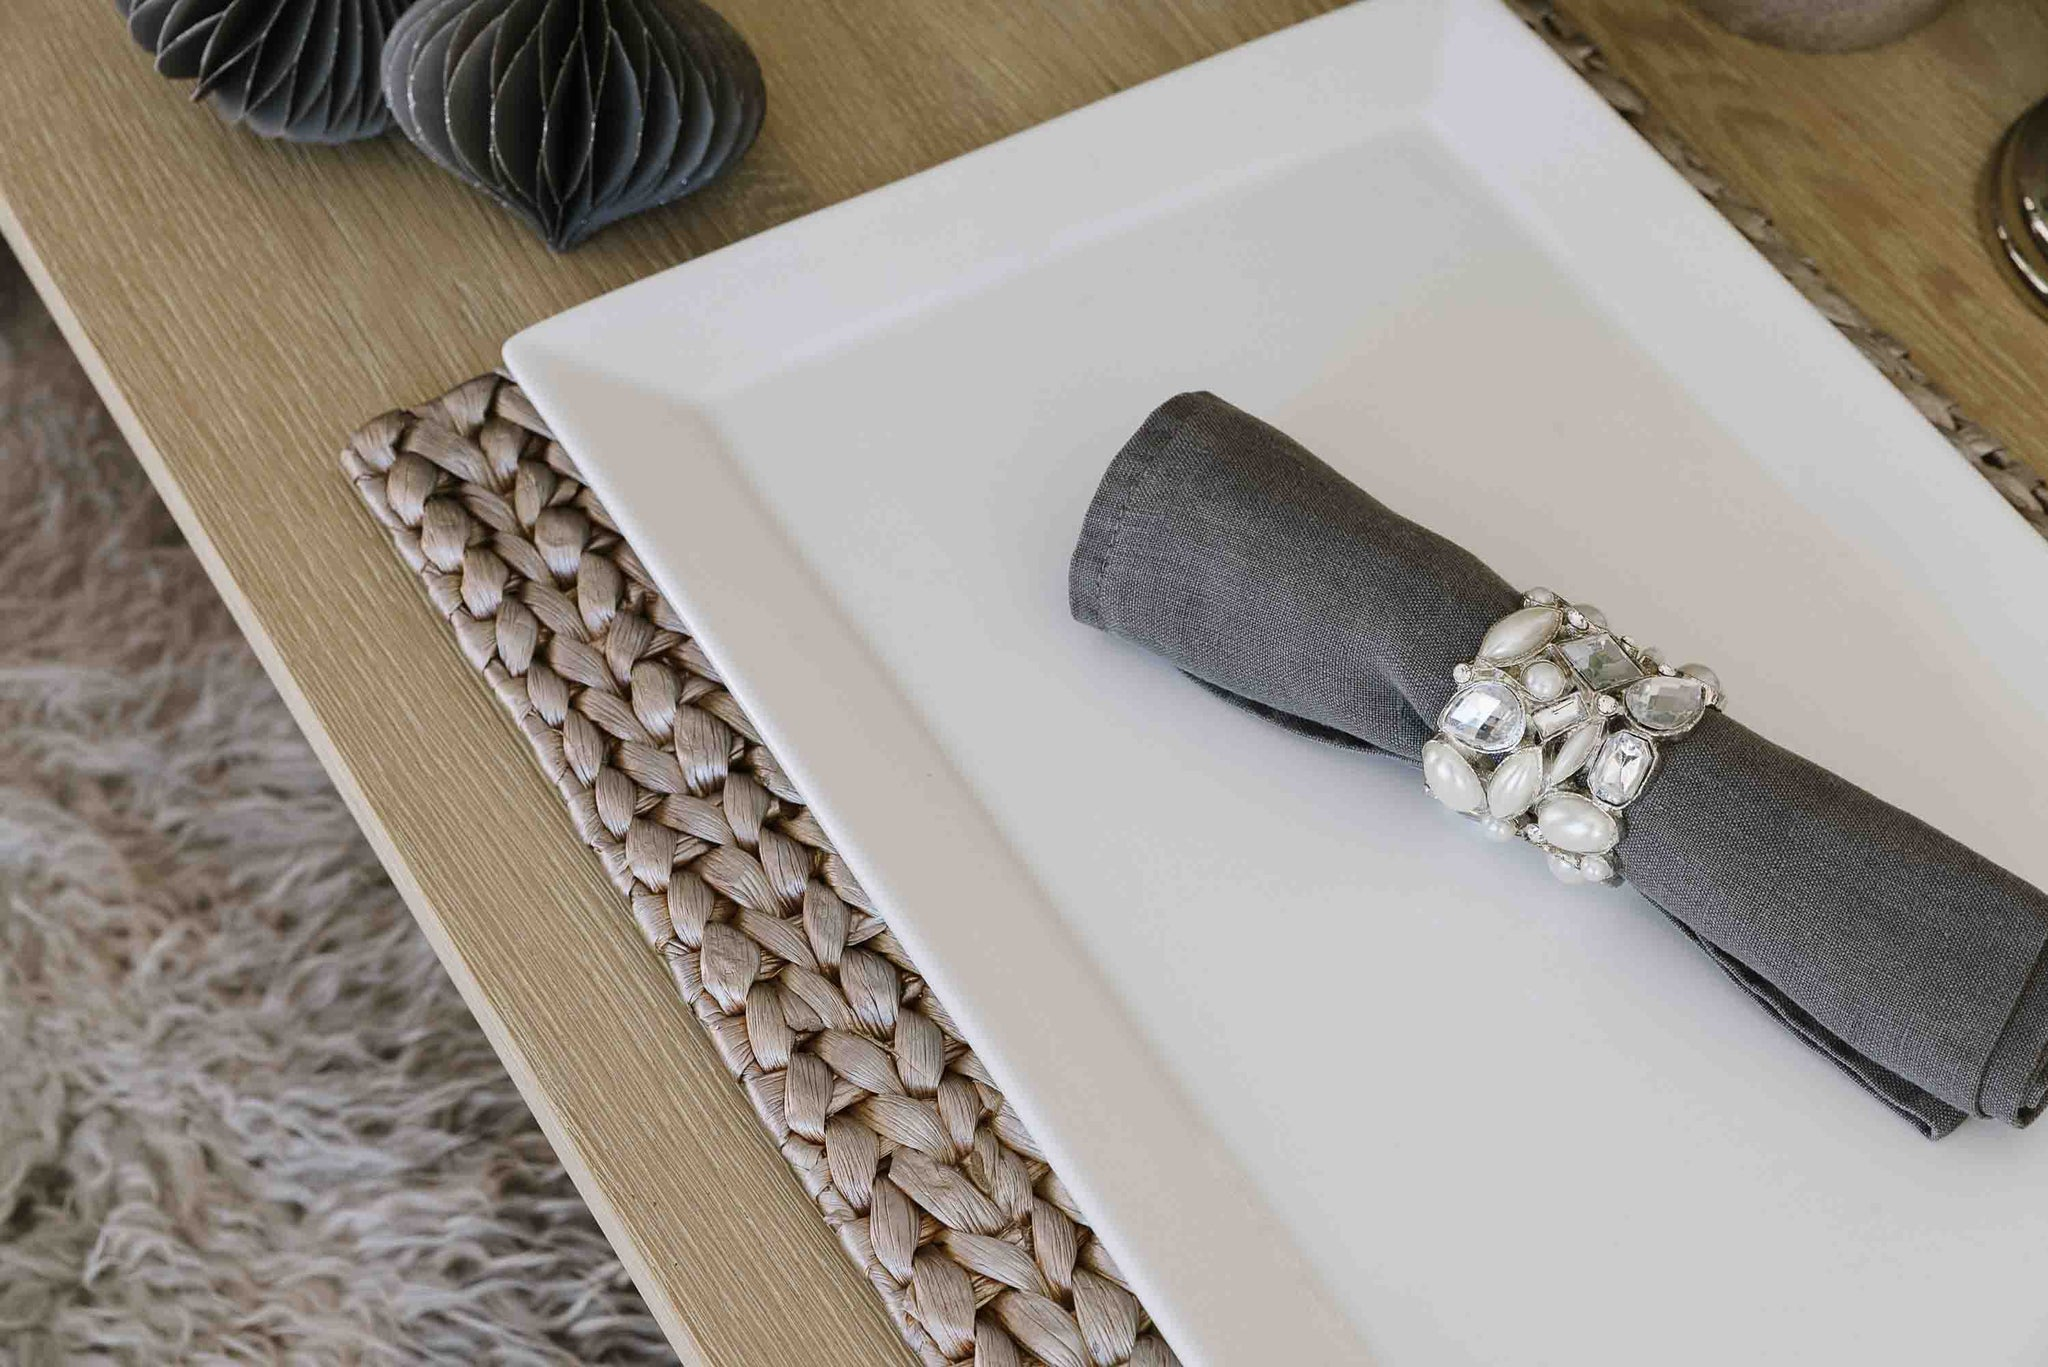 Jewelled Napkin Rings - Comet by India Jane